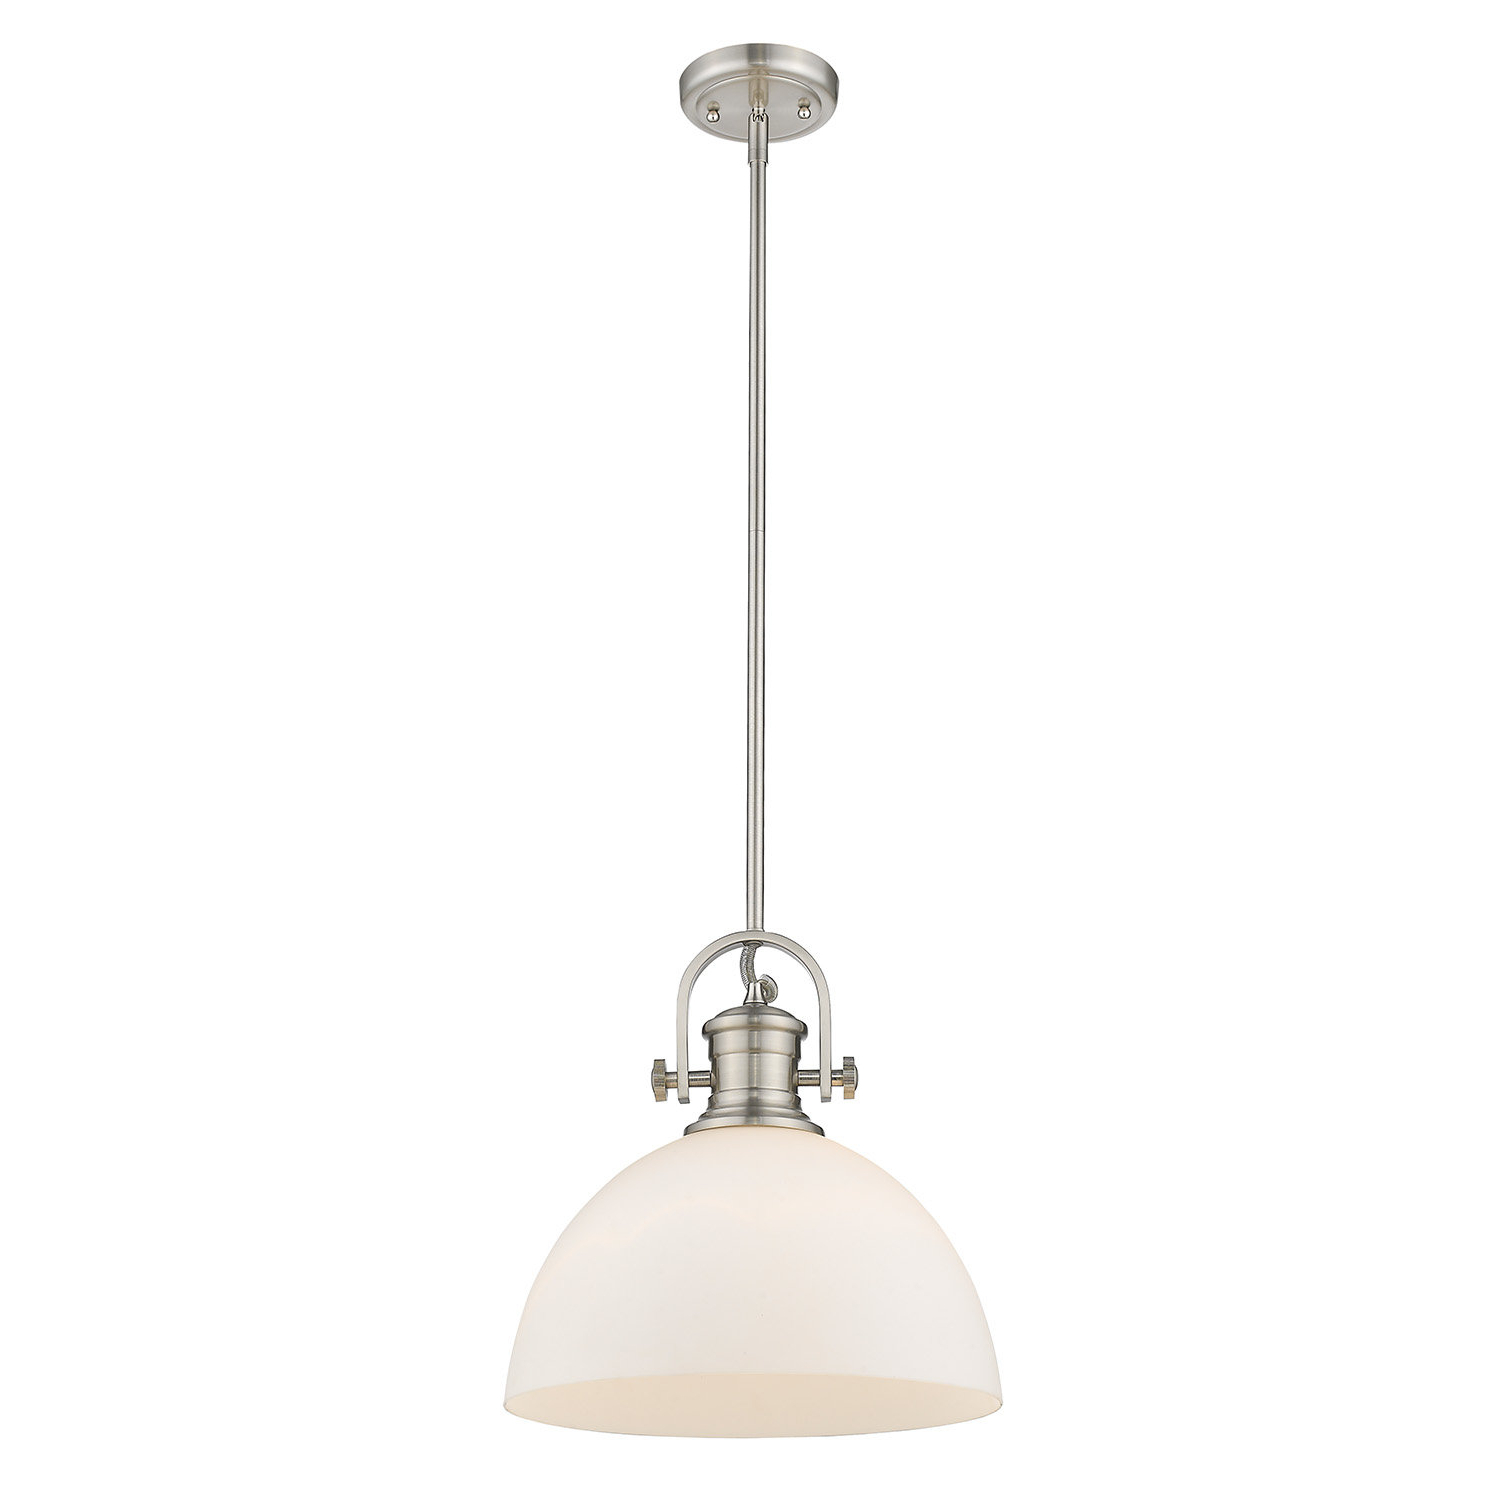 Well Liked Abernathy 1 Light Dome Pendants Within Vedder 1 Light Inverted Pendant (View 12 of 20)